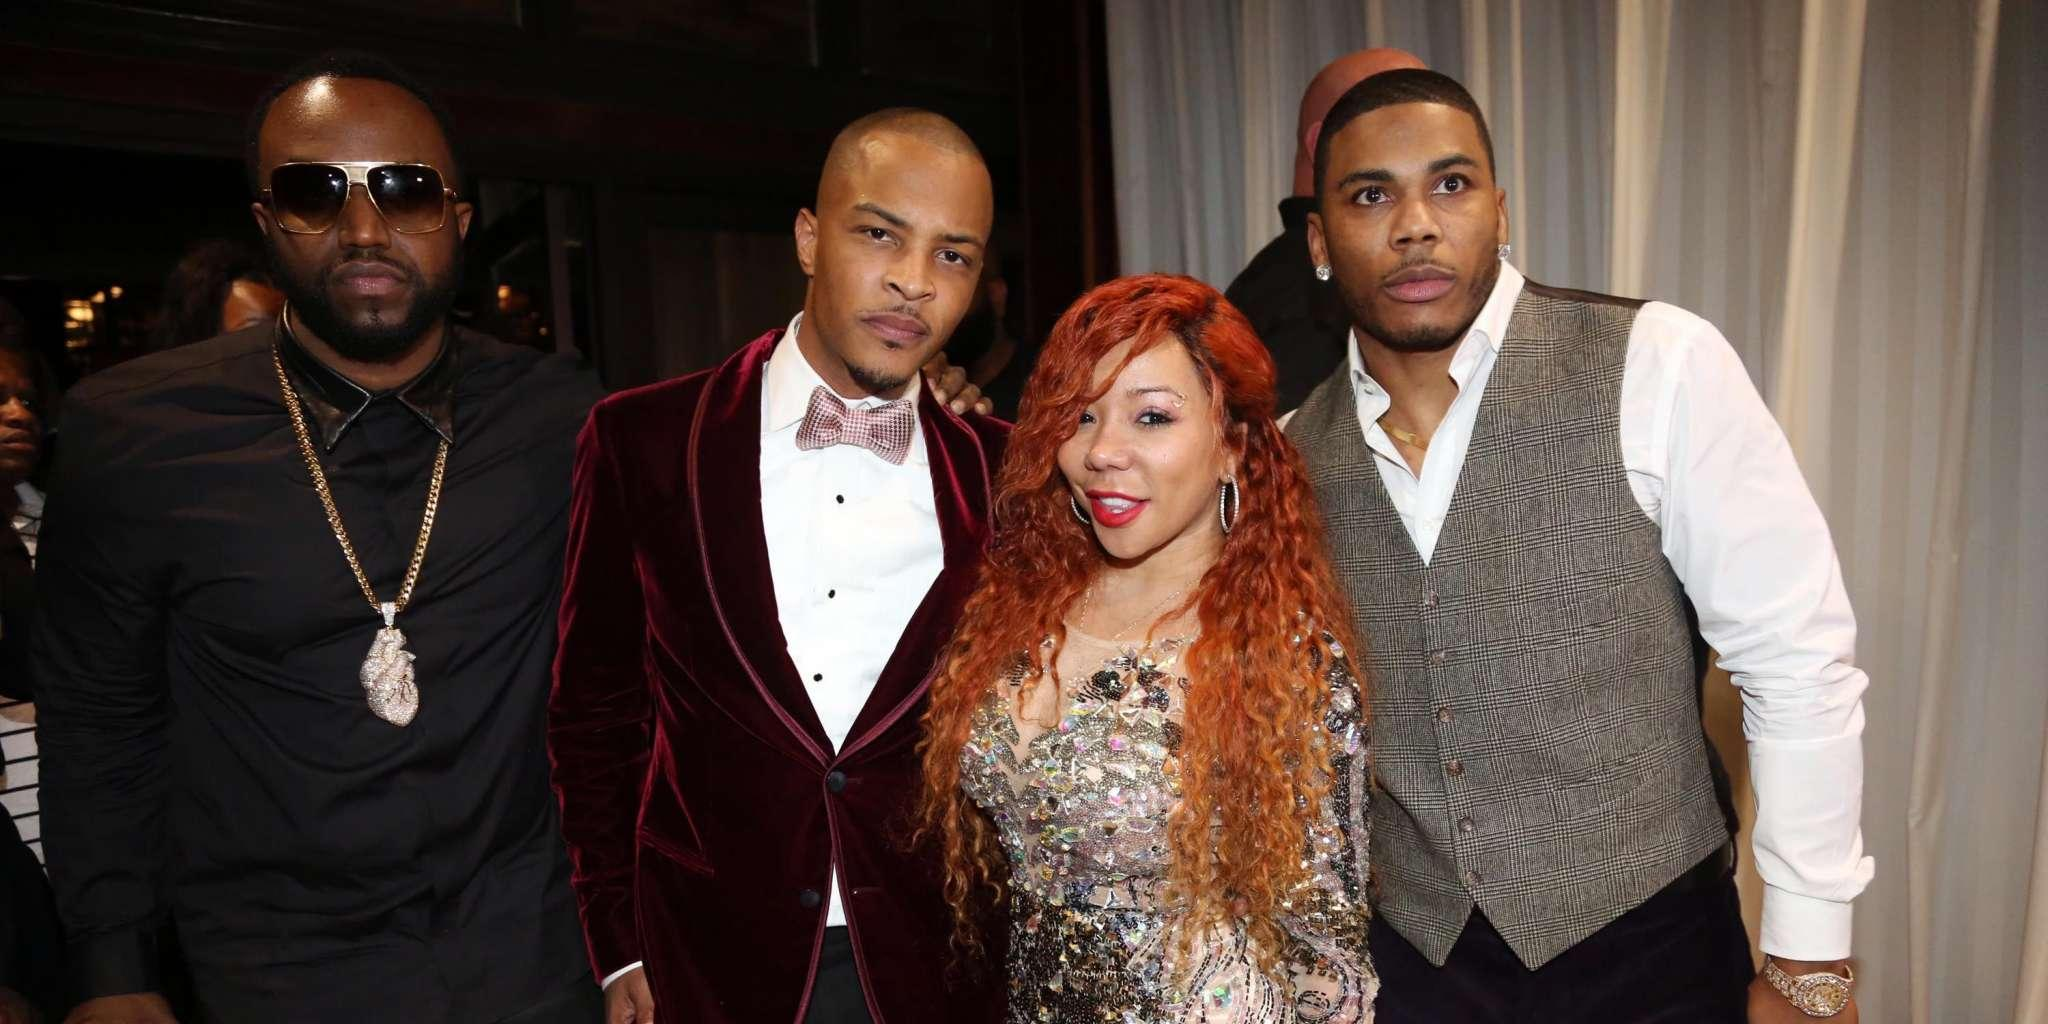 T.I. & Tiny Harris Looked Great At The Today Show Ahead Of New Episodes Of 'T.I. & Tiny: Friends & Family Hustle' - Fans Call Them 'The Bey & Jay Of The South'